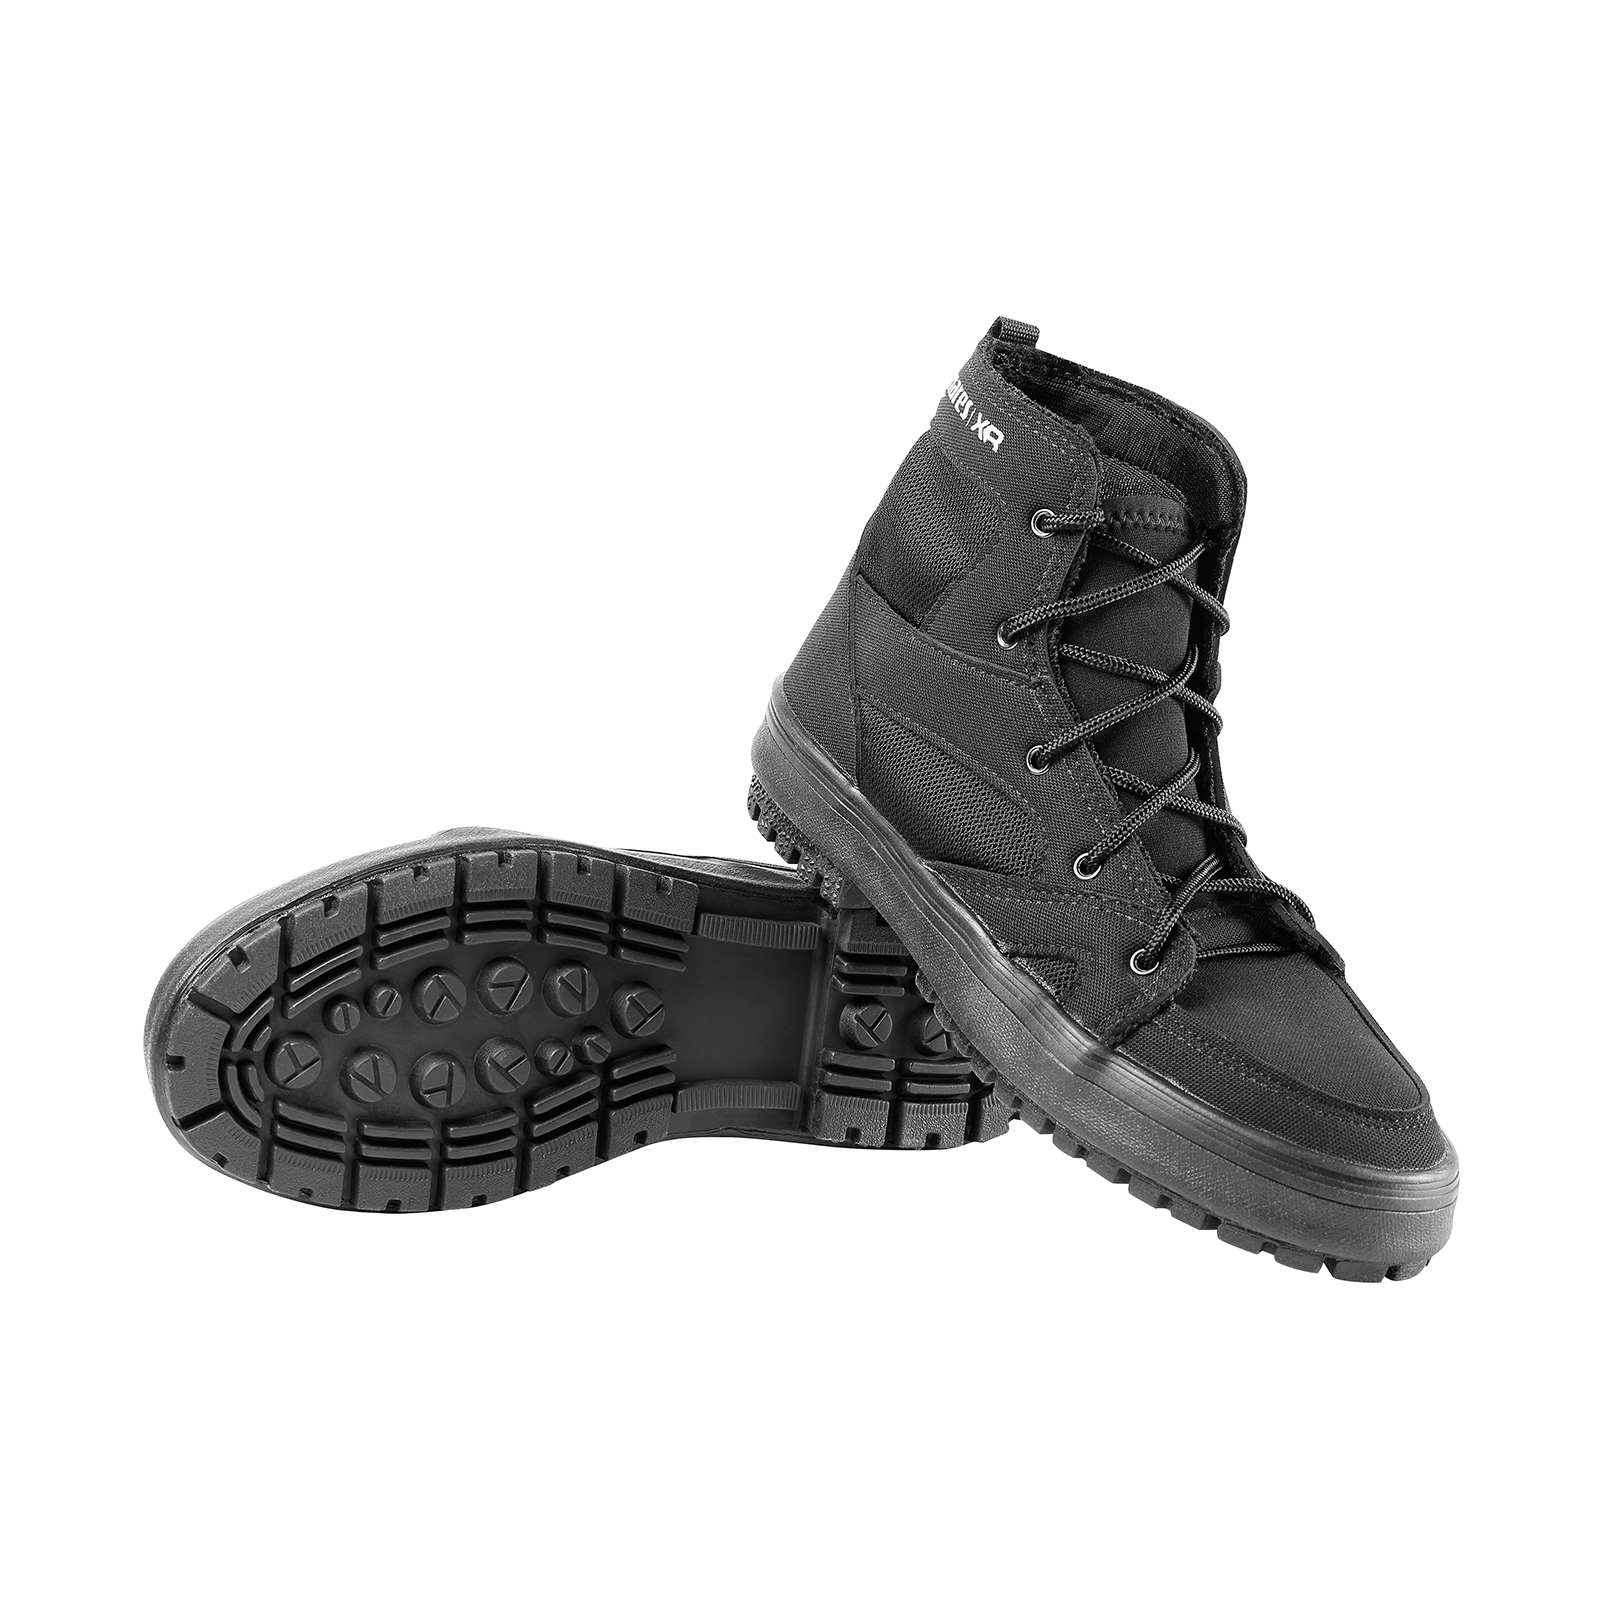 MARES XR - Rock Boot